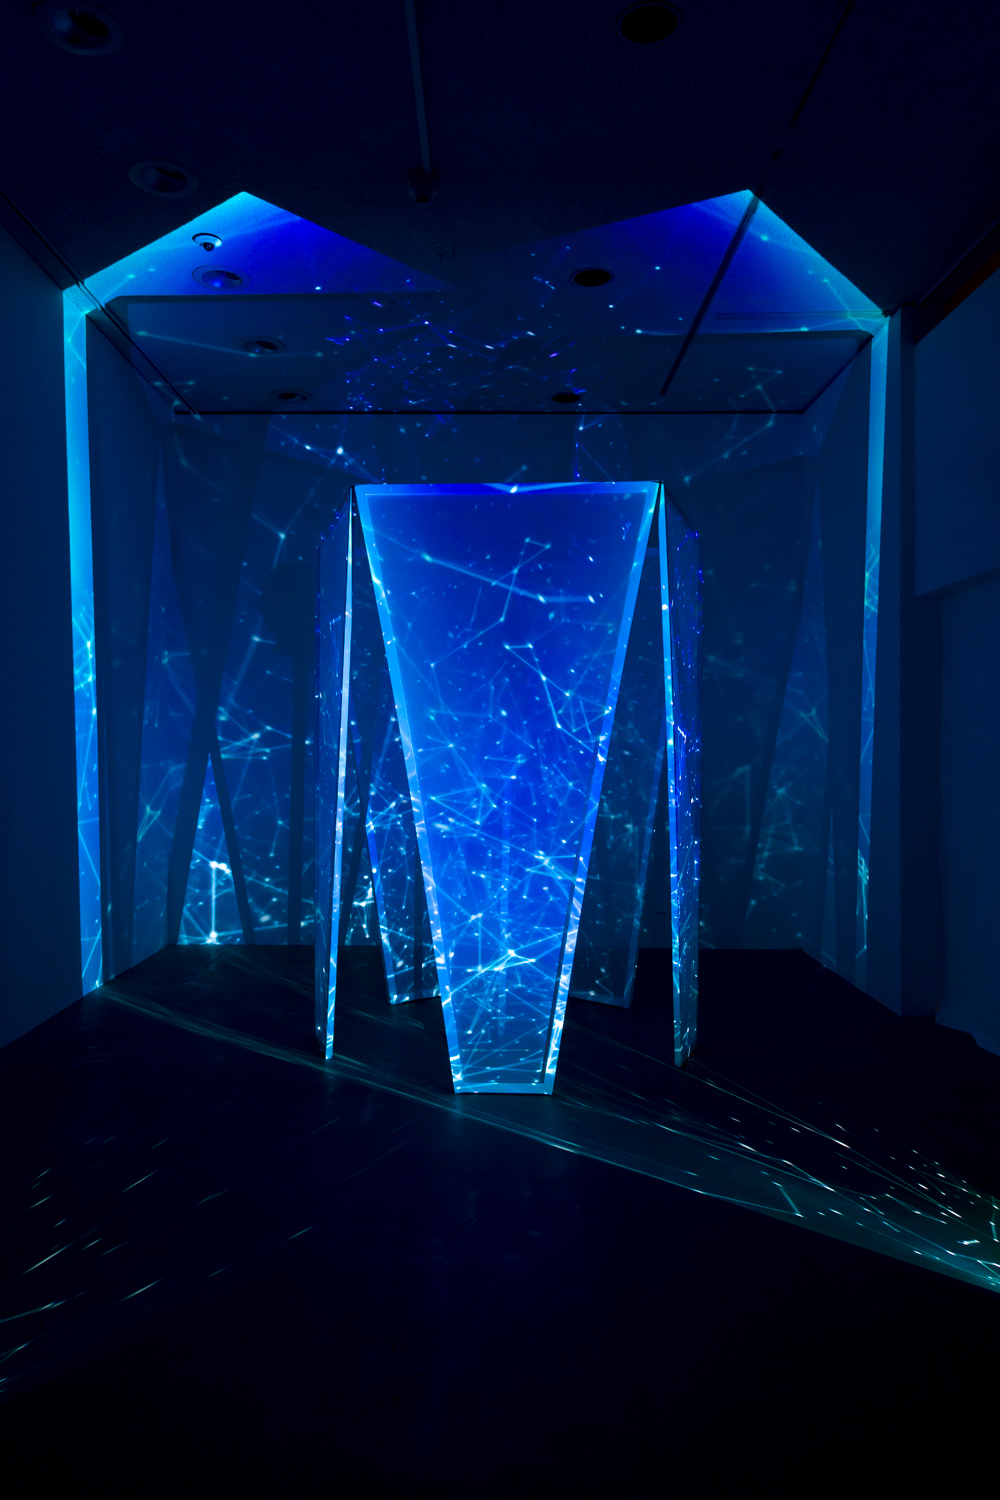 This video artwork installation by the artist Peter Wu features a video projection comprising a 3-D print of the artist's head in a distorted representation and a free-standing structure onto which videos are projected; the colors in the video range from bright blues, to dark reds and blacks. The 3-D print of the artist's head is placed in the center of the free-standing structure.